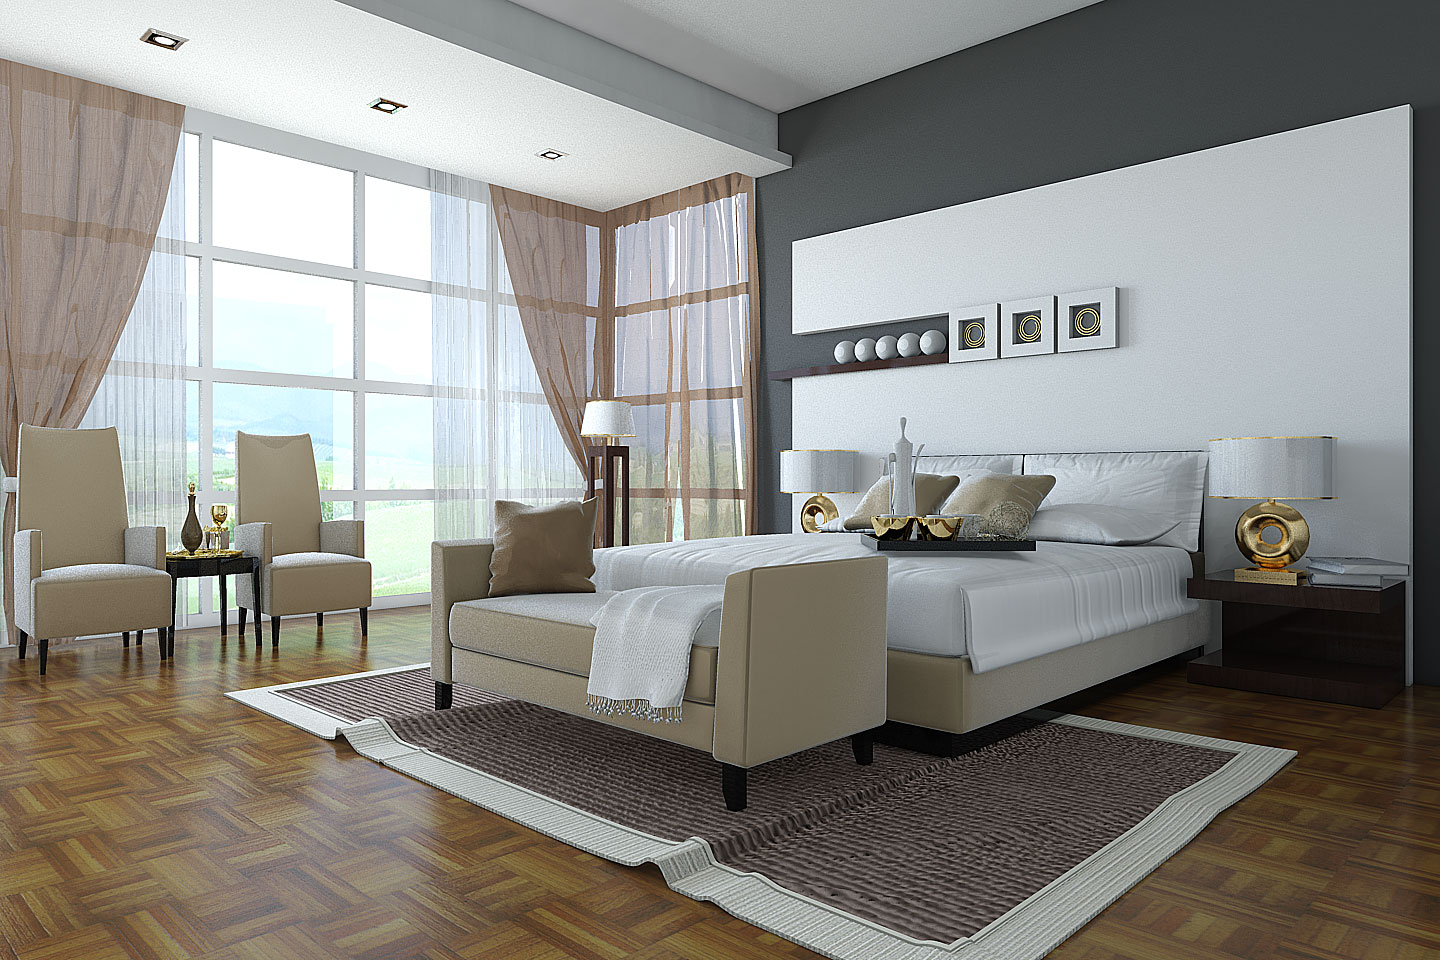 Greatest home decor accessories beautiful designer bedrooms Bedroom layout design